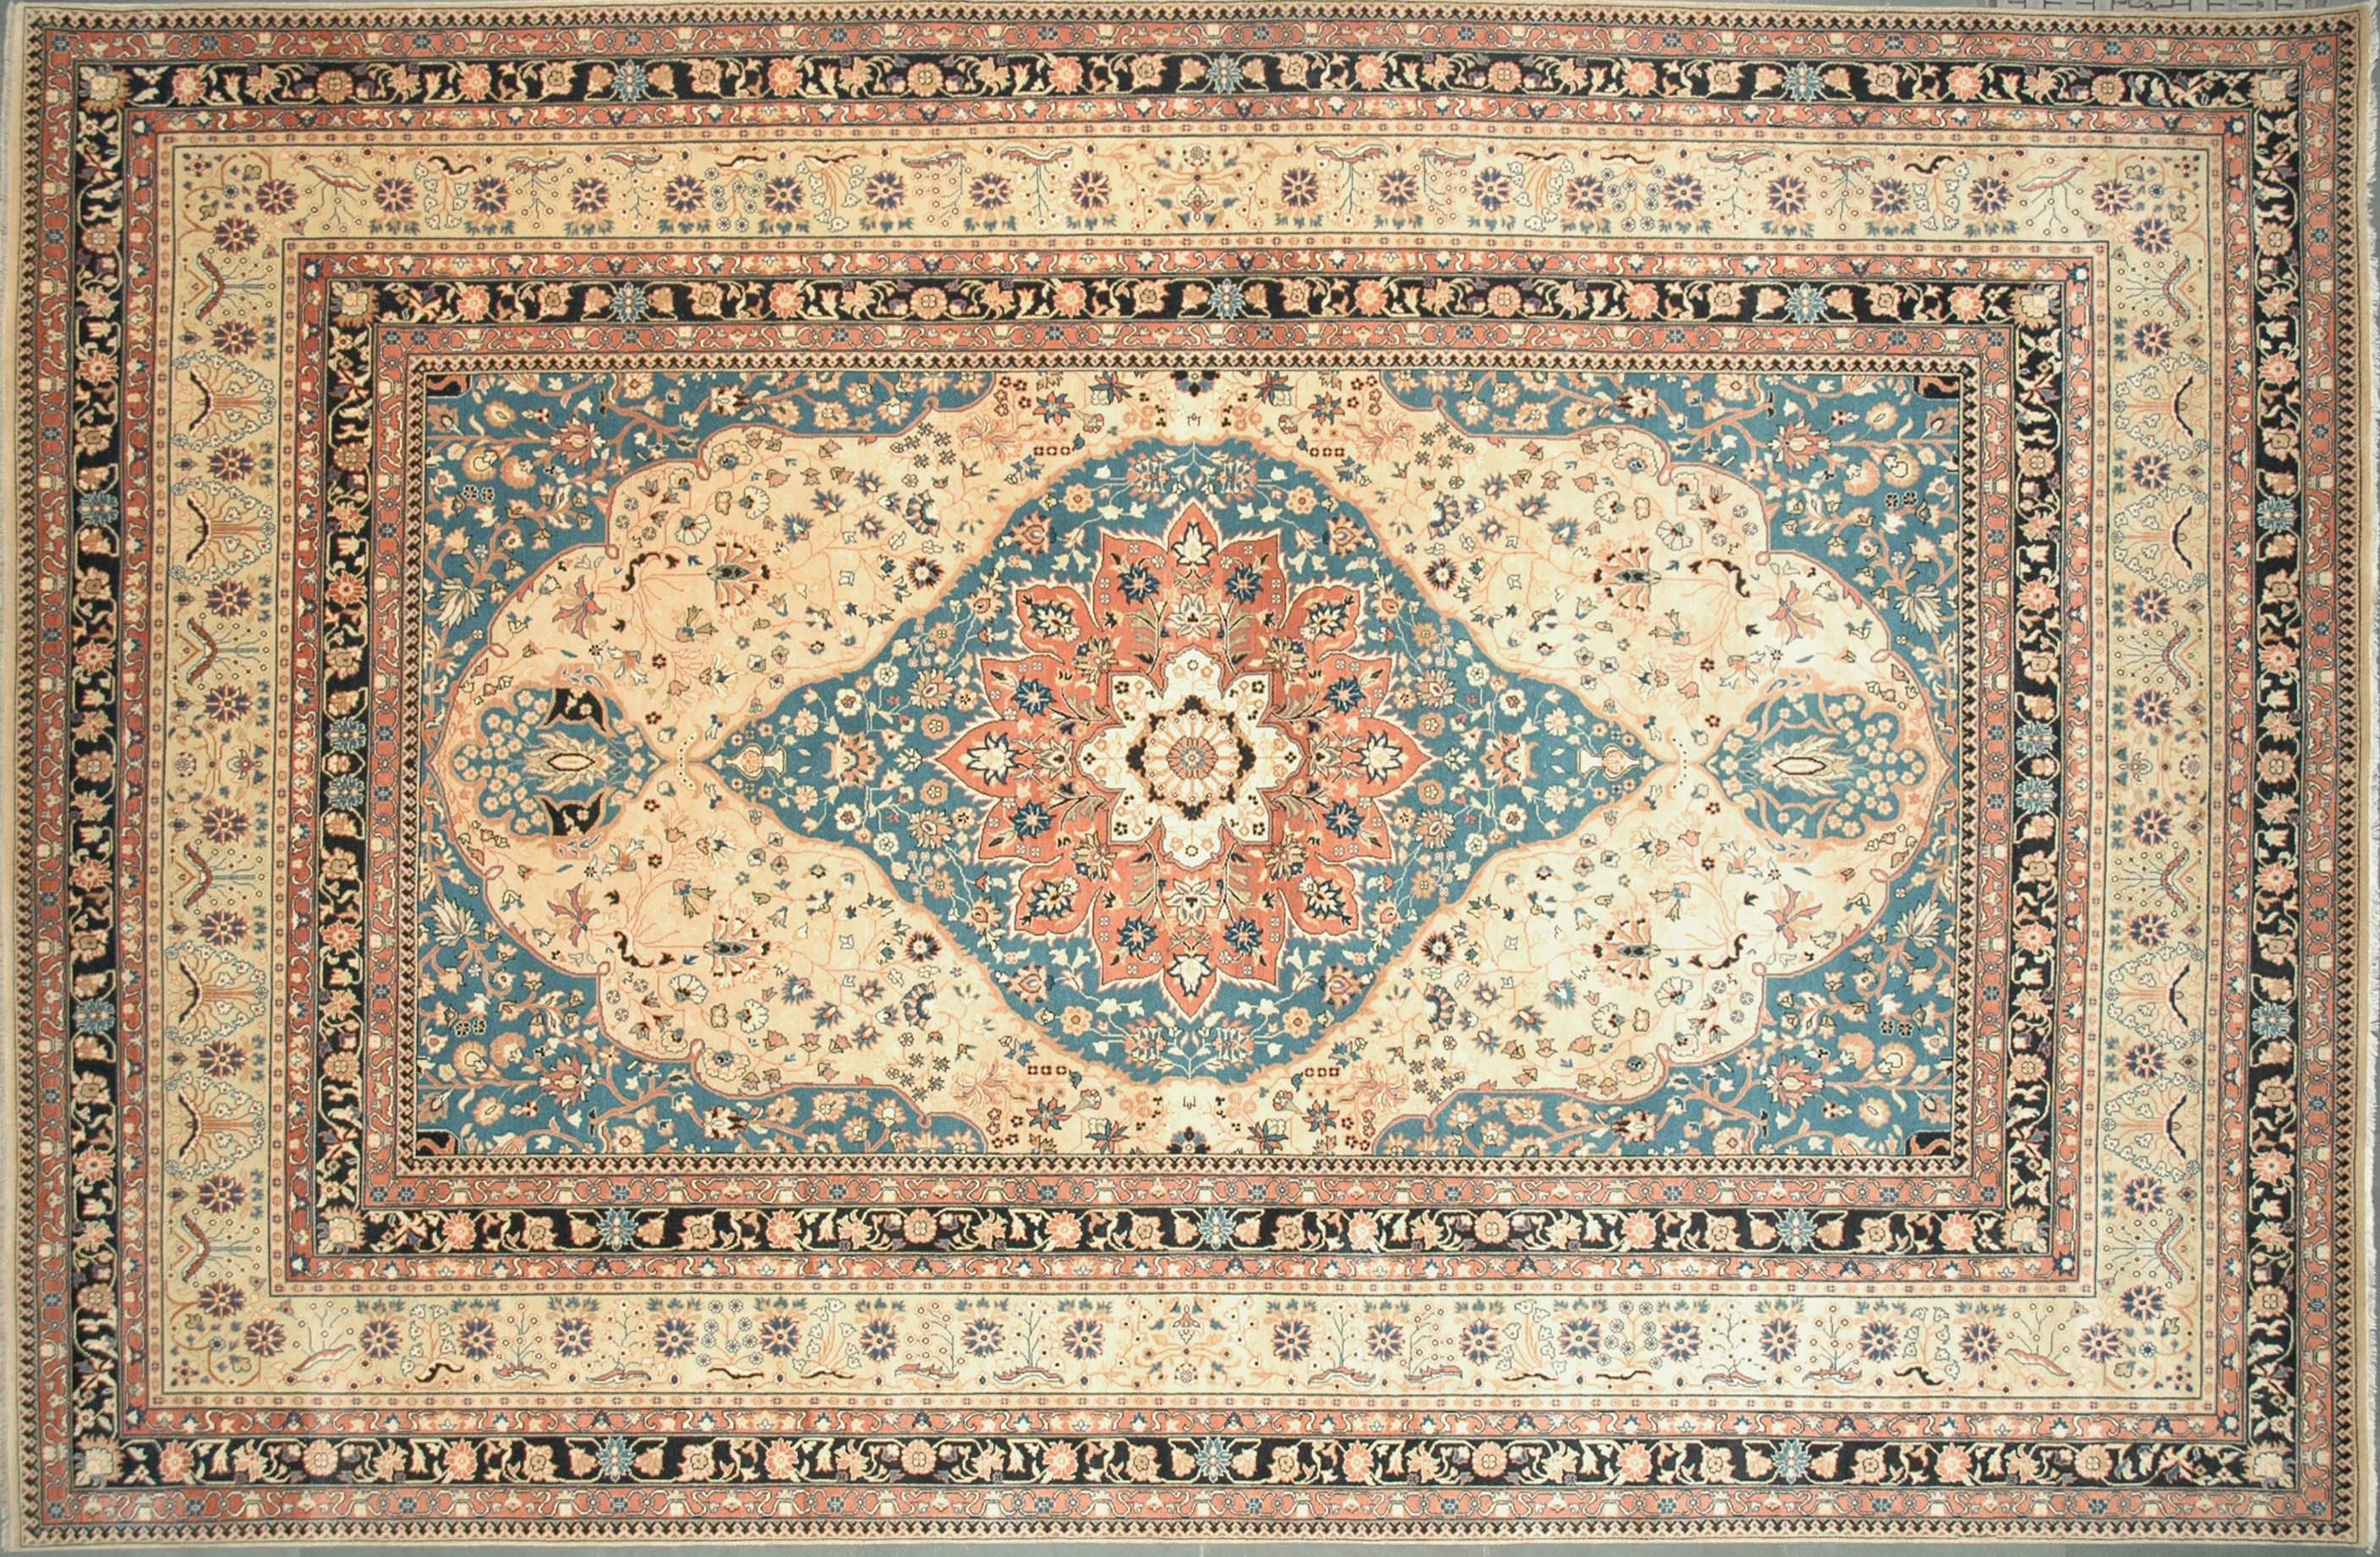 Blue Persian Rug Design Ideas Decor Regarding Blue Persian Rugs (Image 8 of 15)